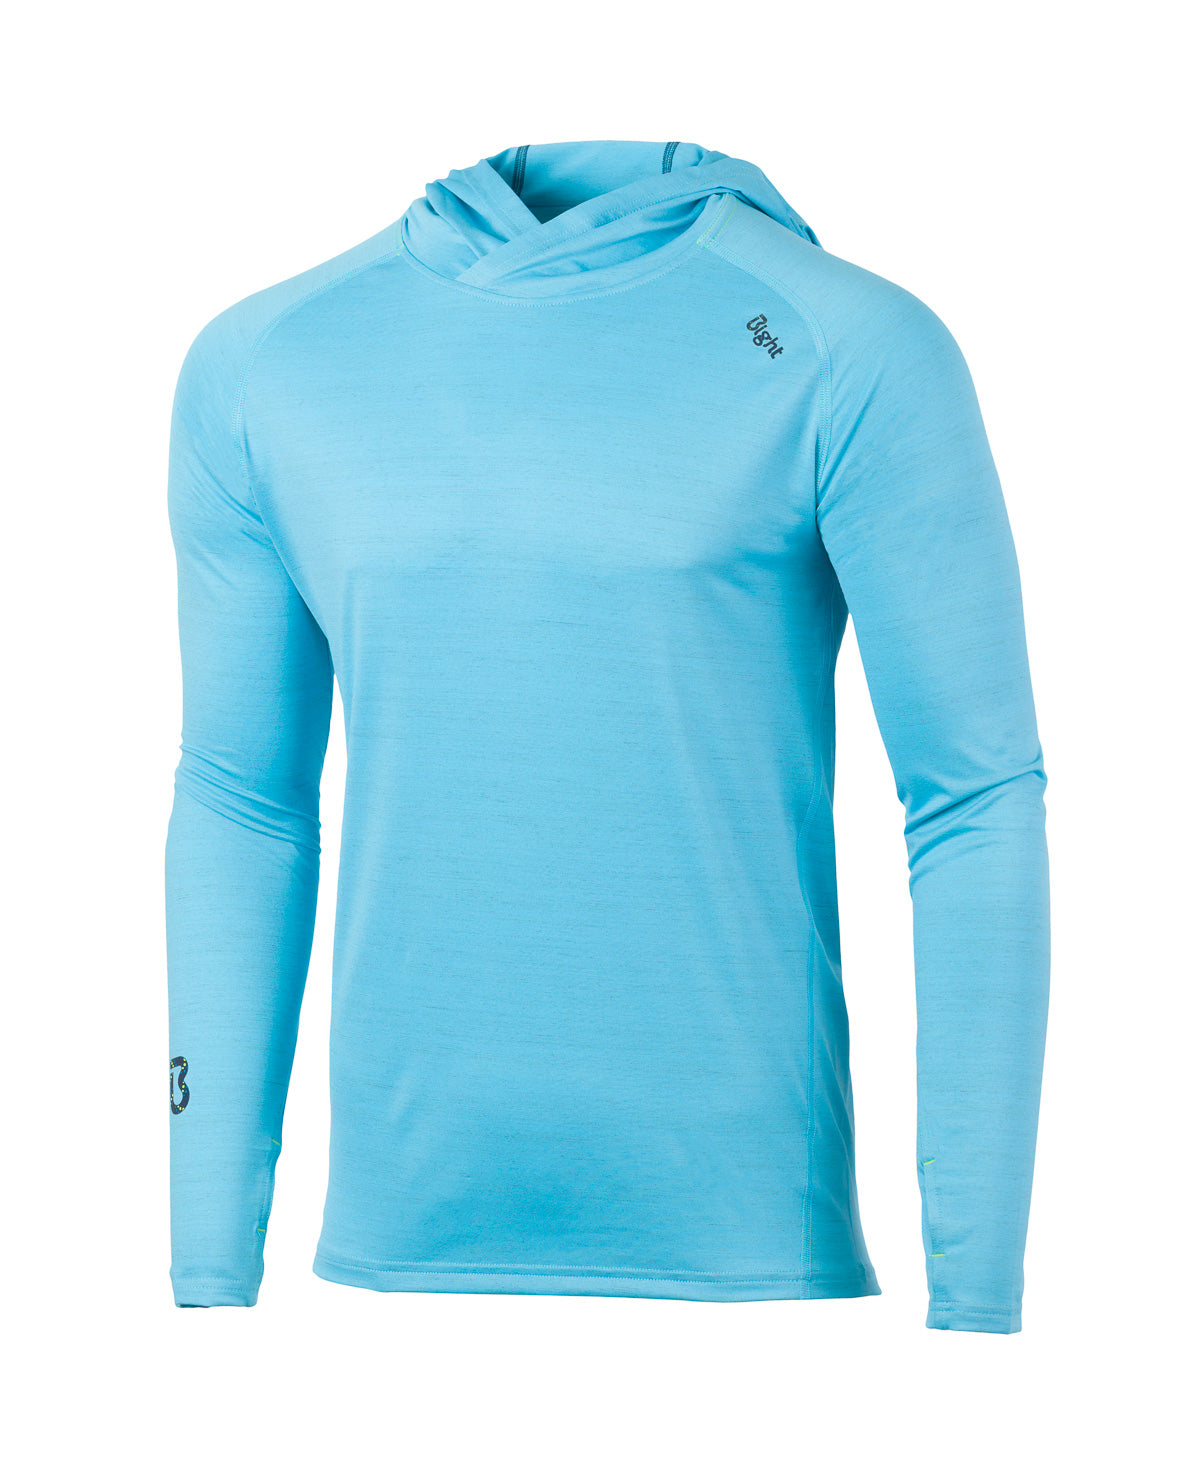 Men's Solstice Graphene Hoody